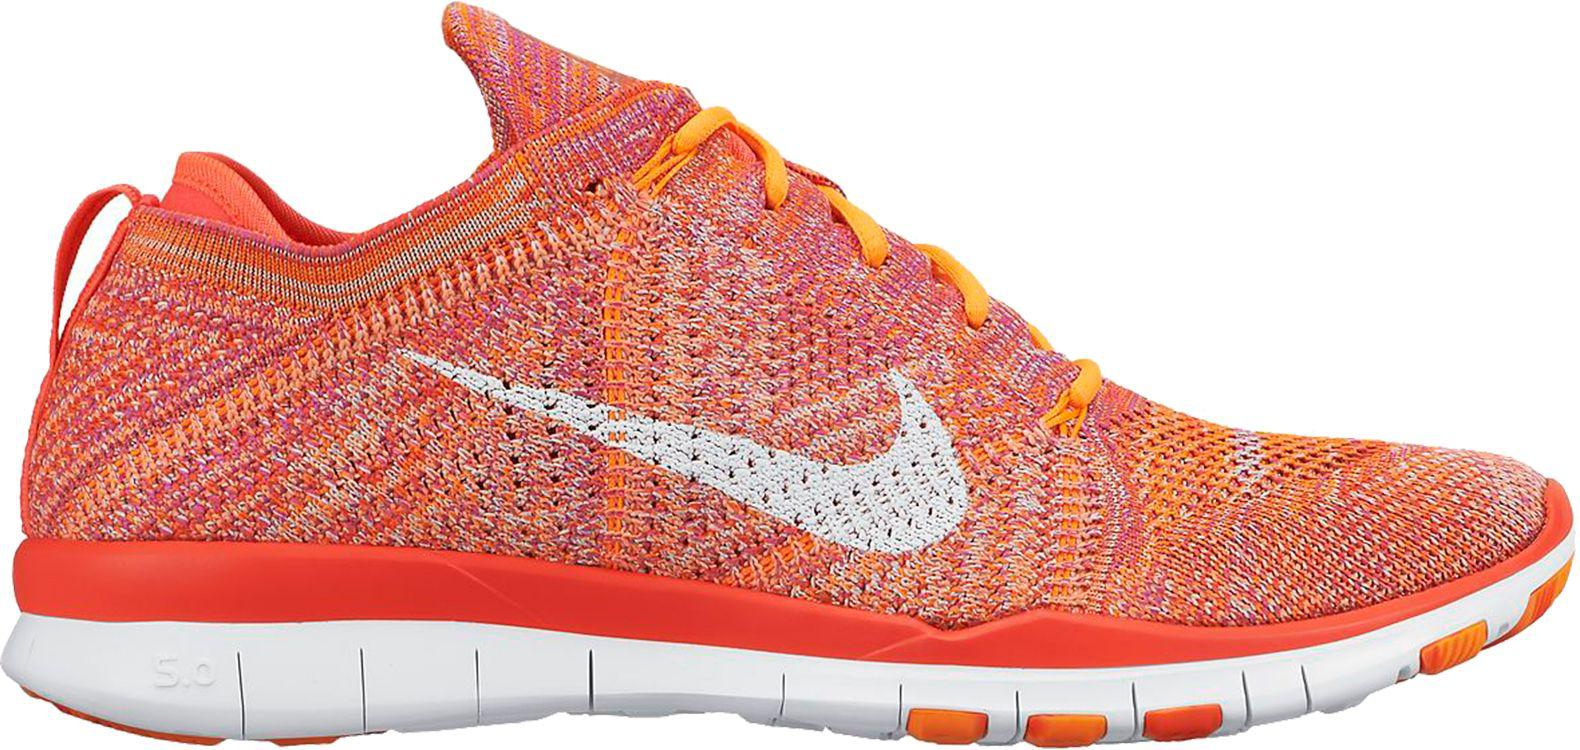 ddaec7b69bac8 Nike - Multicolor Free Flyknit Tr 5.0 Training Shoes - Lyst